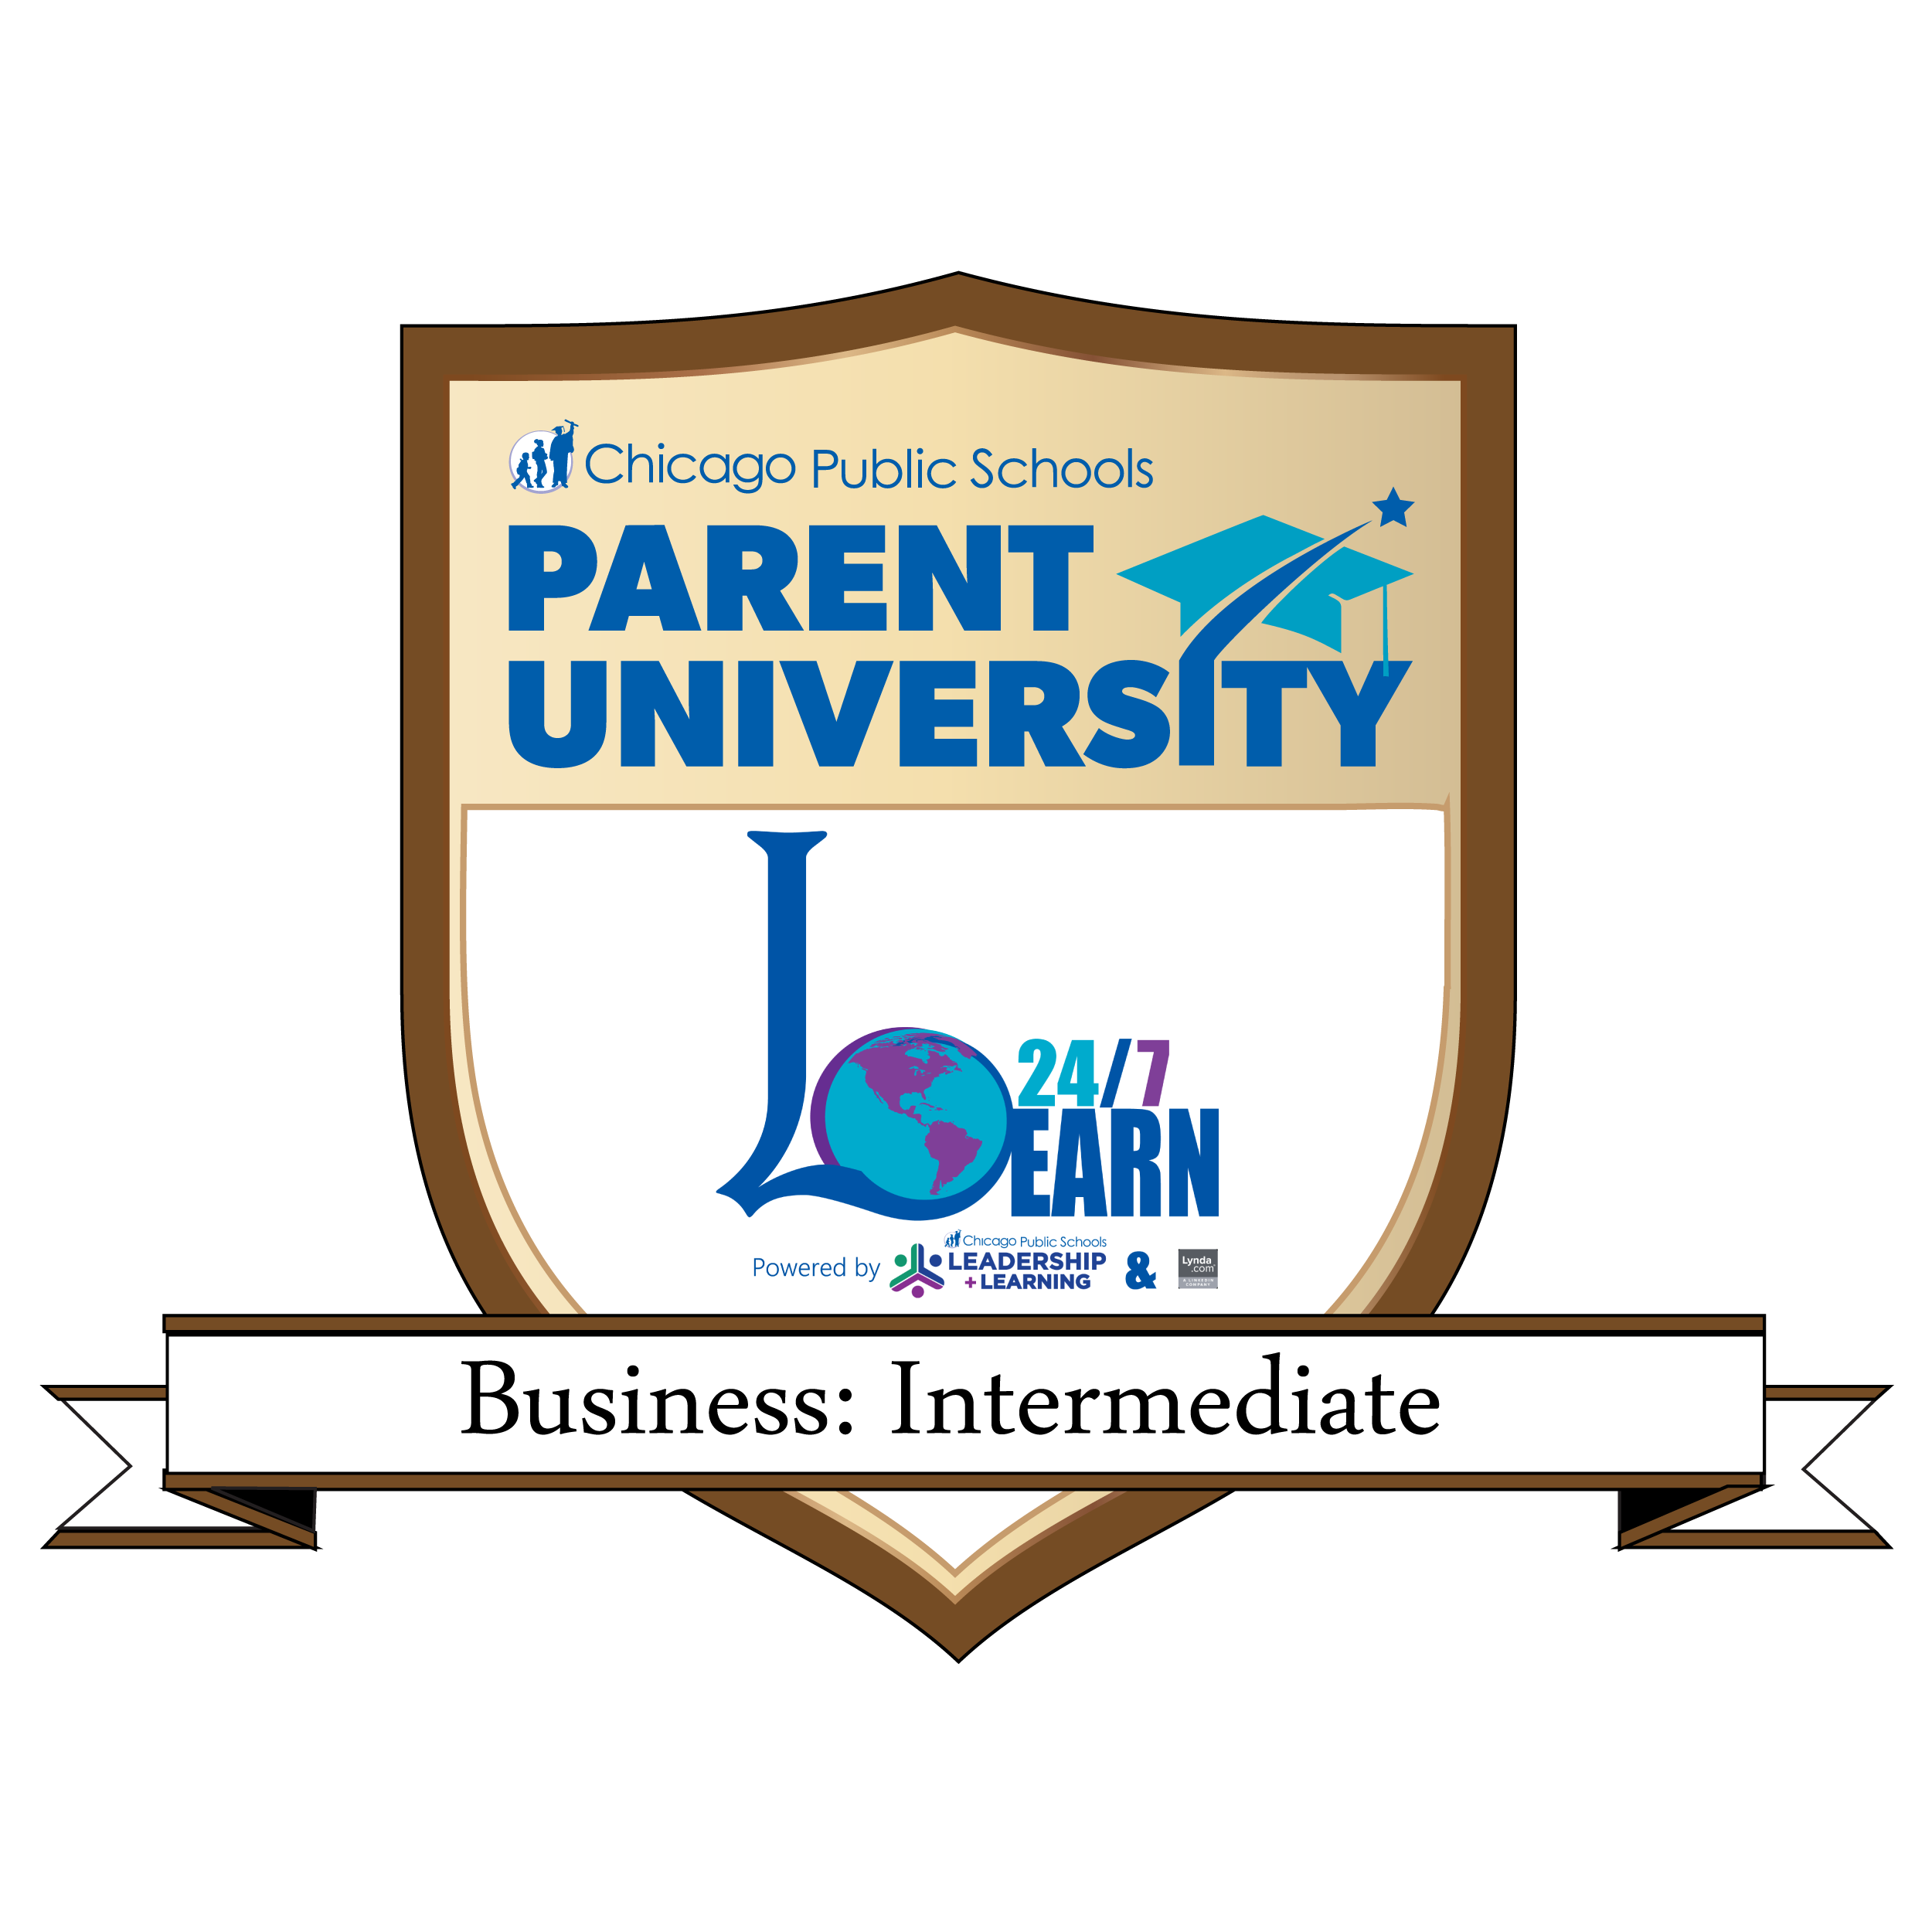 Business: Intermediate